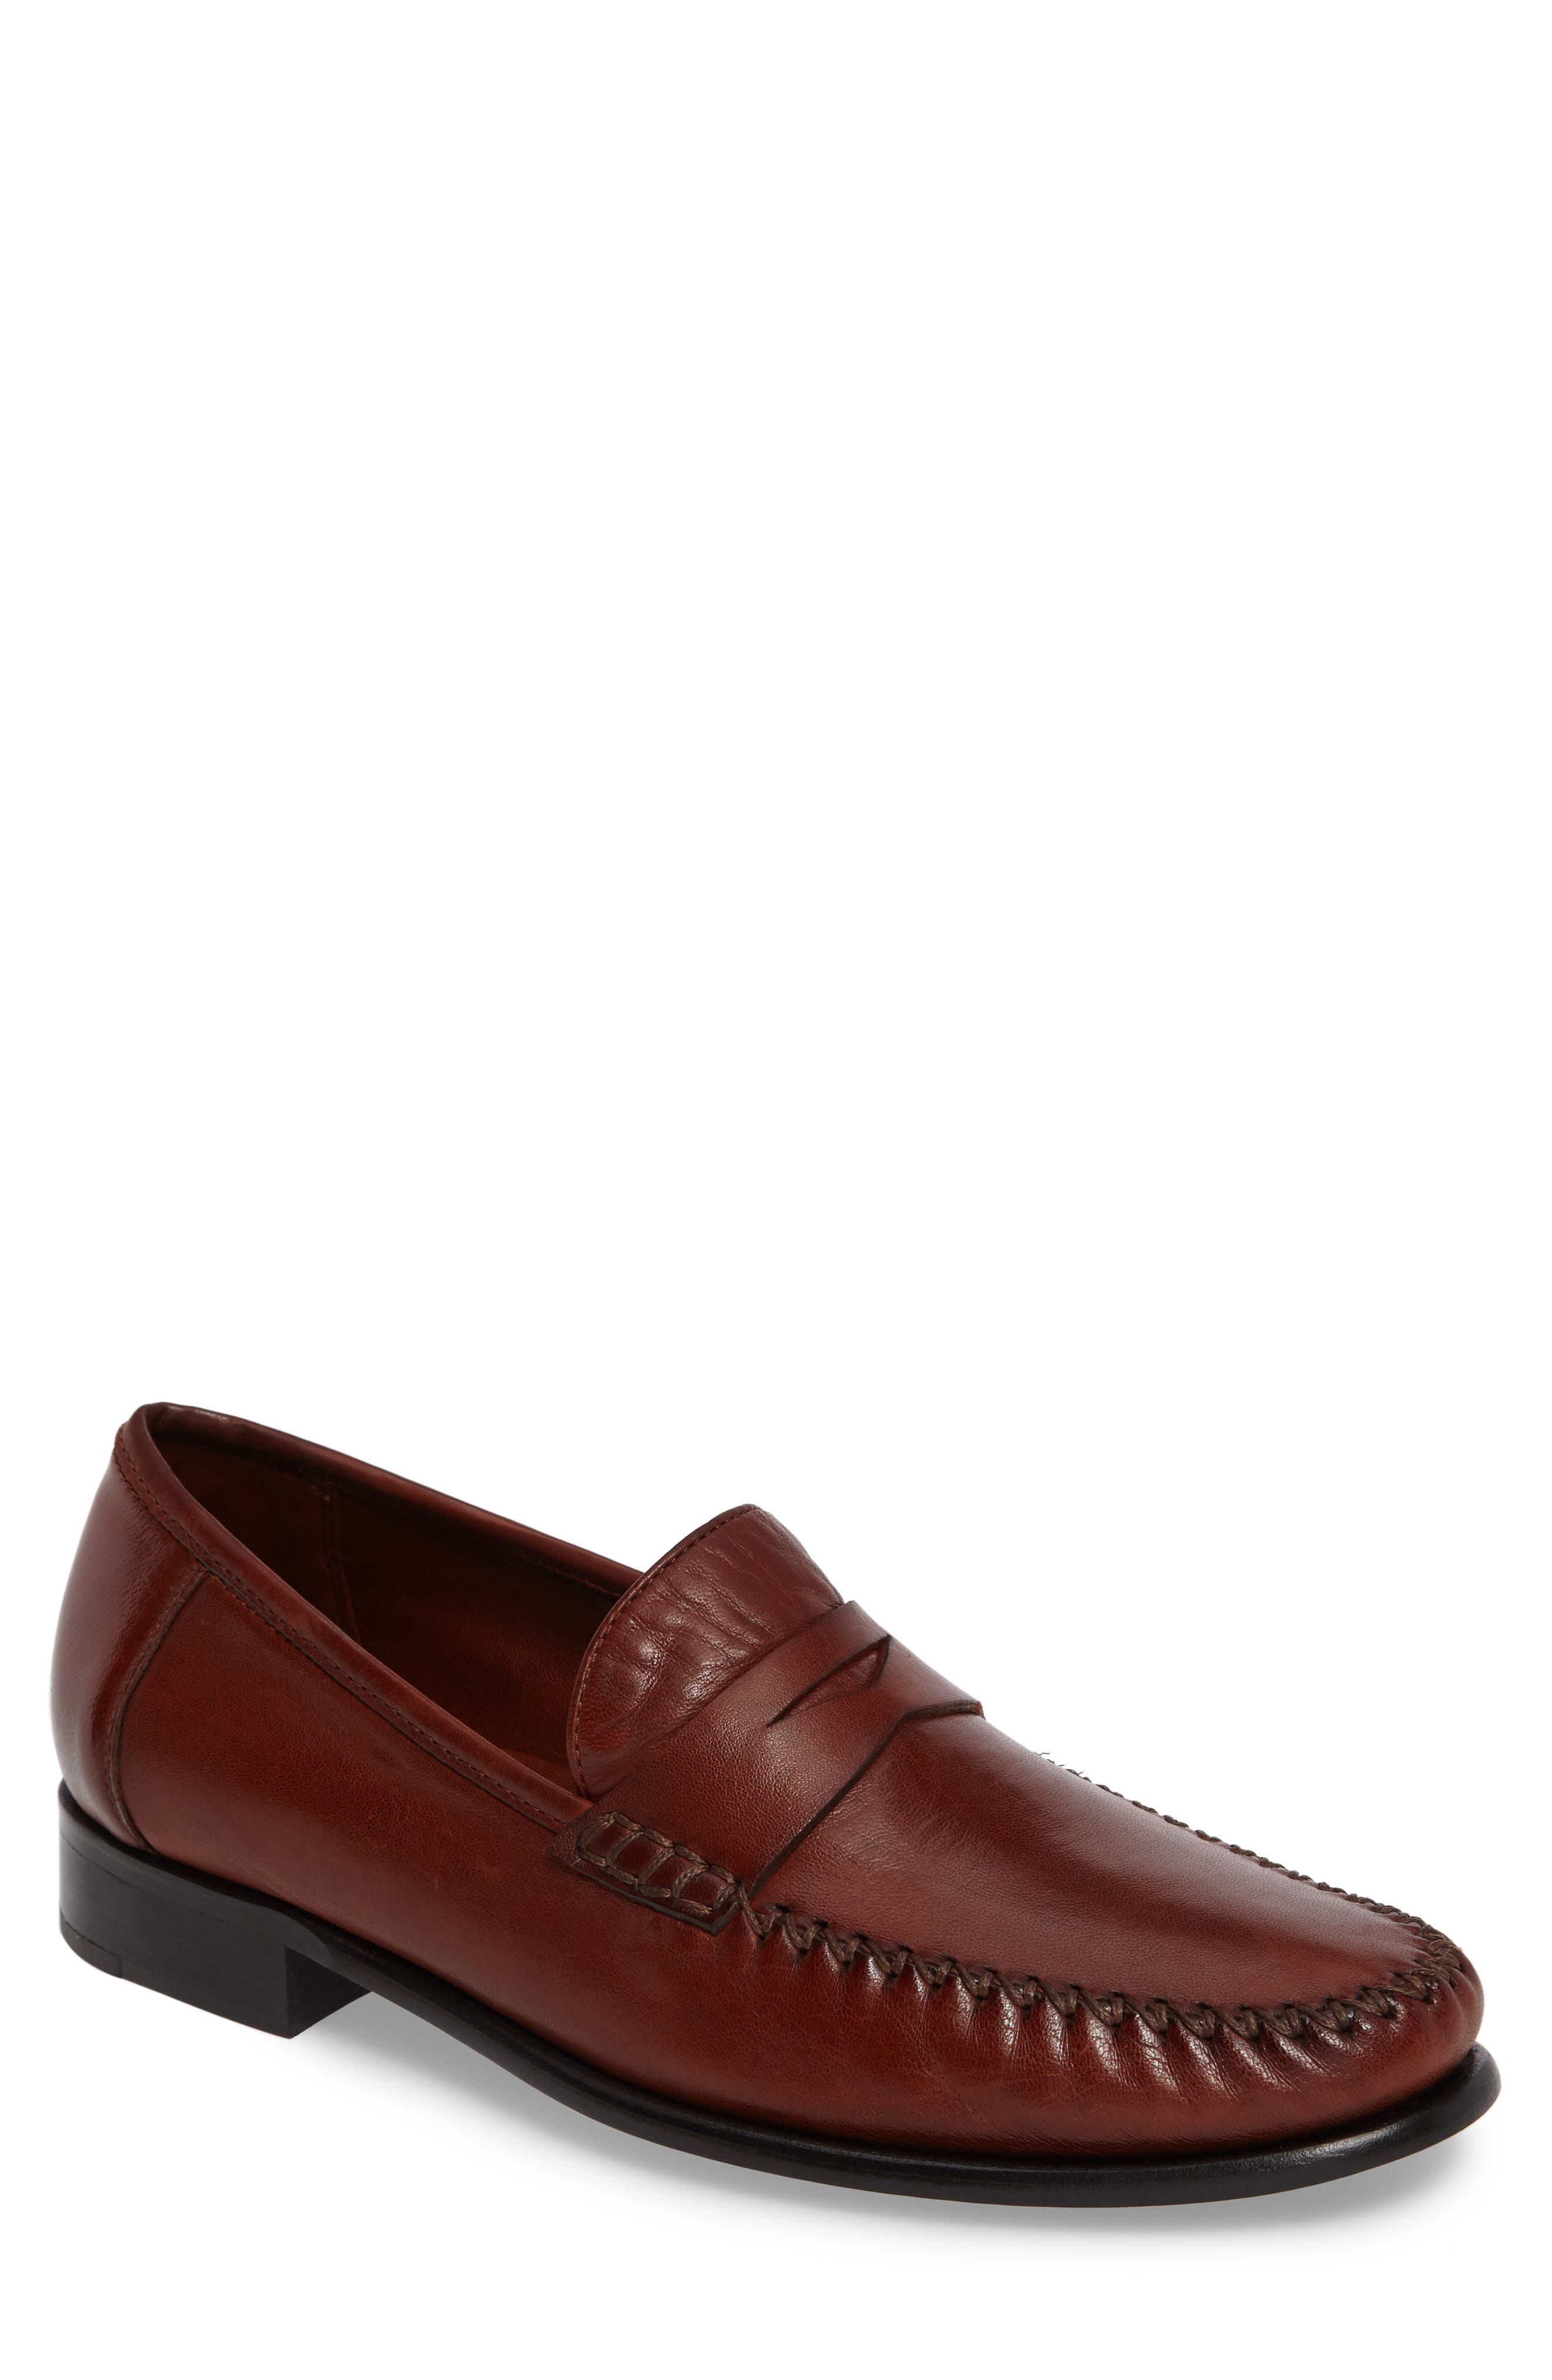 Penny Loafer,                             Main thumbnail 1, color,                             DARK LUGGAGE LEATHER